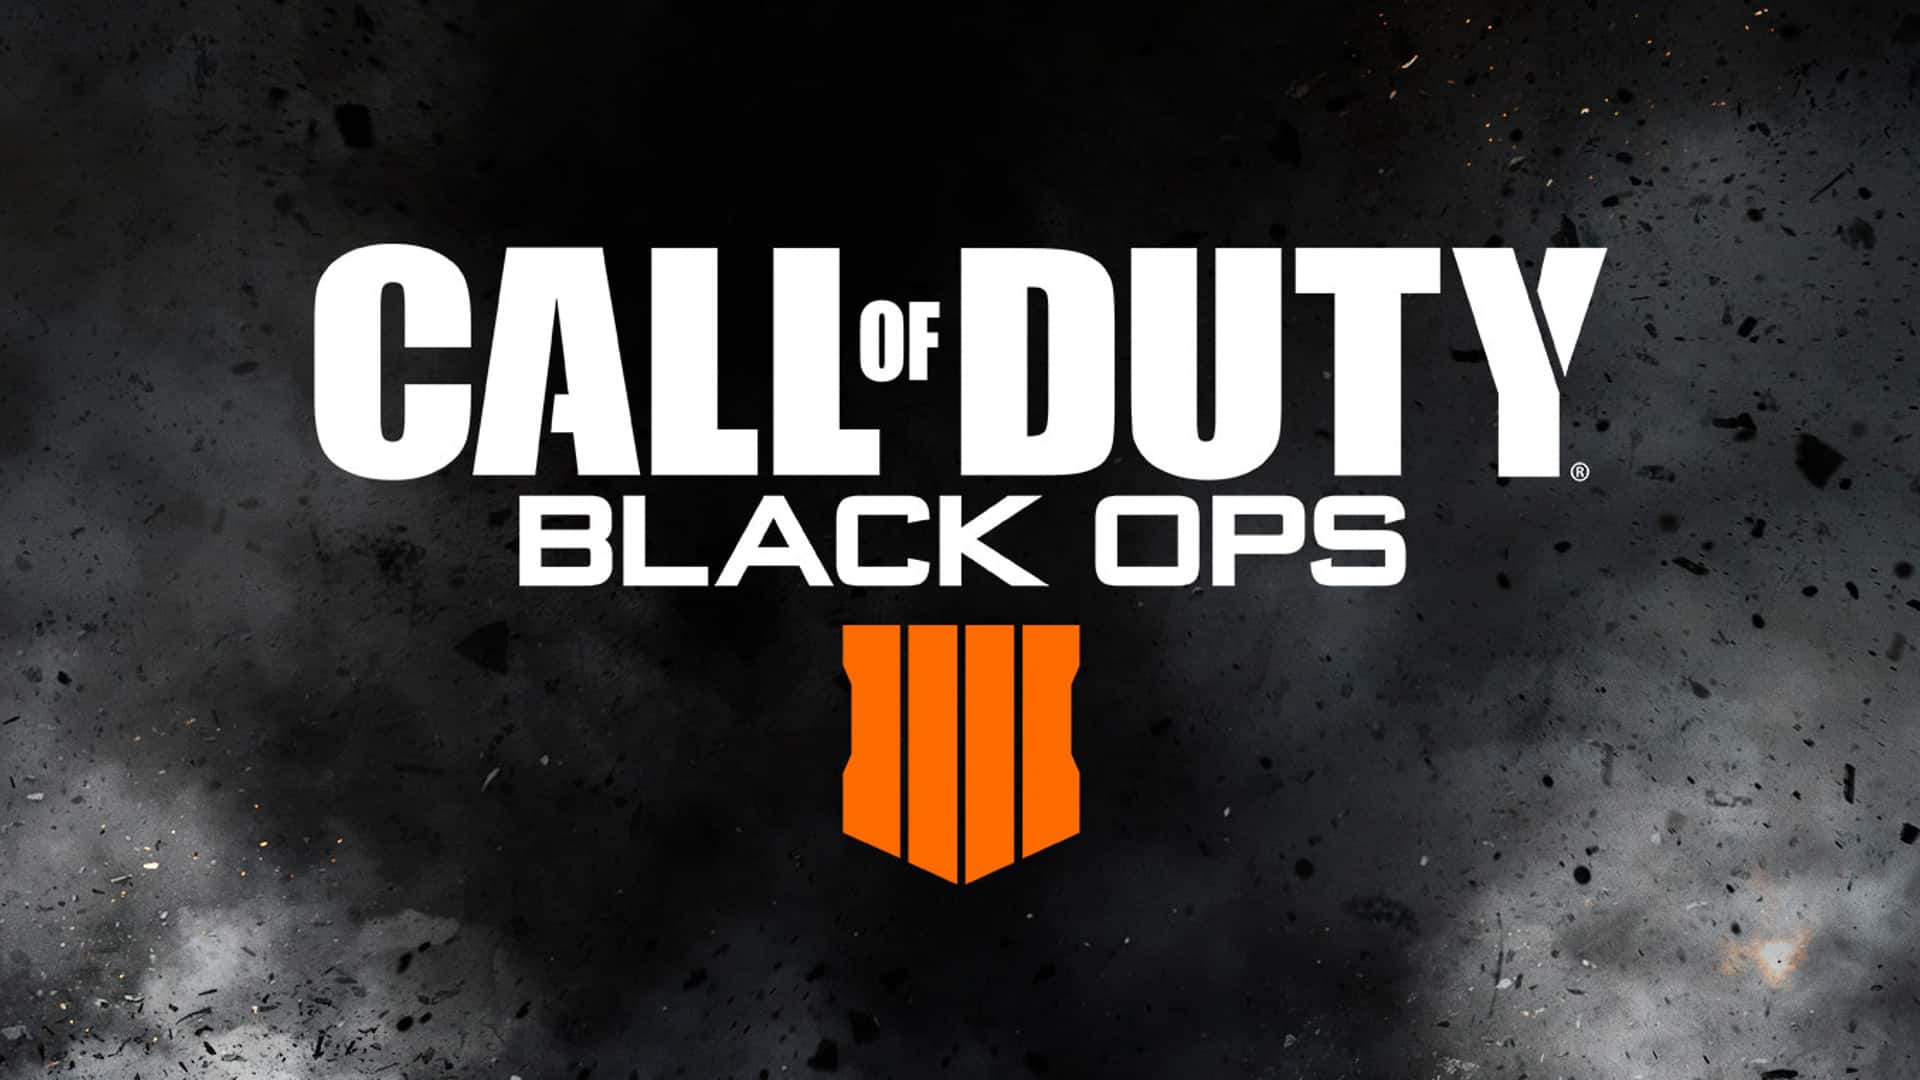 Gaming Call of Duty Black Ops 4 is official! Arrives October 2018 By Edward Swardt- 9 March 2018 0